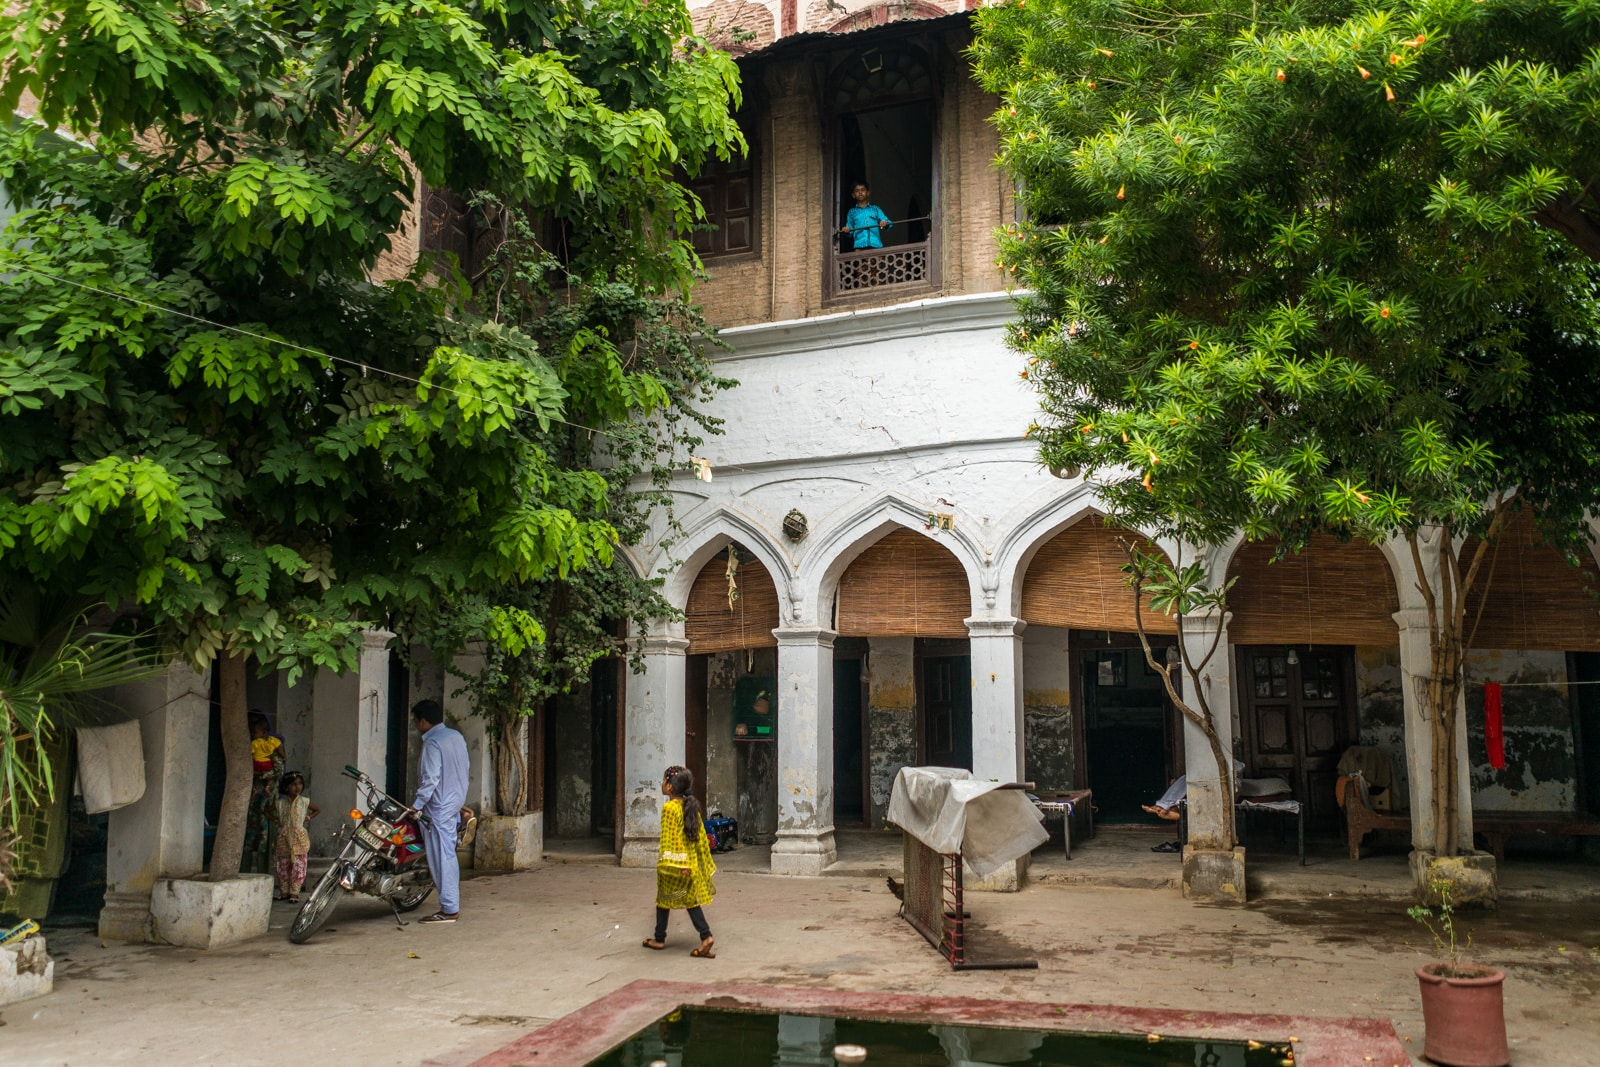 Unique things to do in Lahore, Pakistan - Haveli courtyard in the Walled City of Lahore, Pakistan